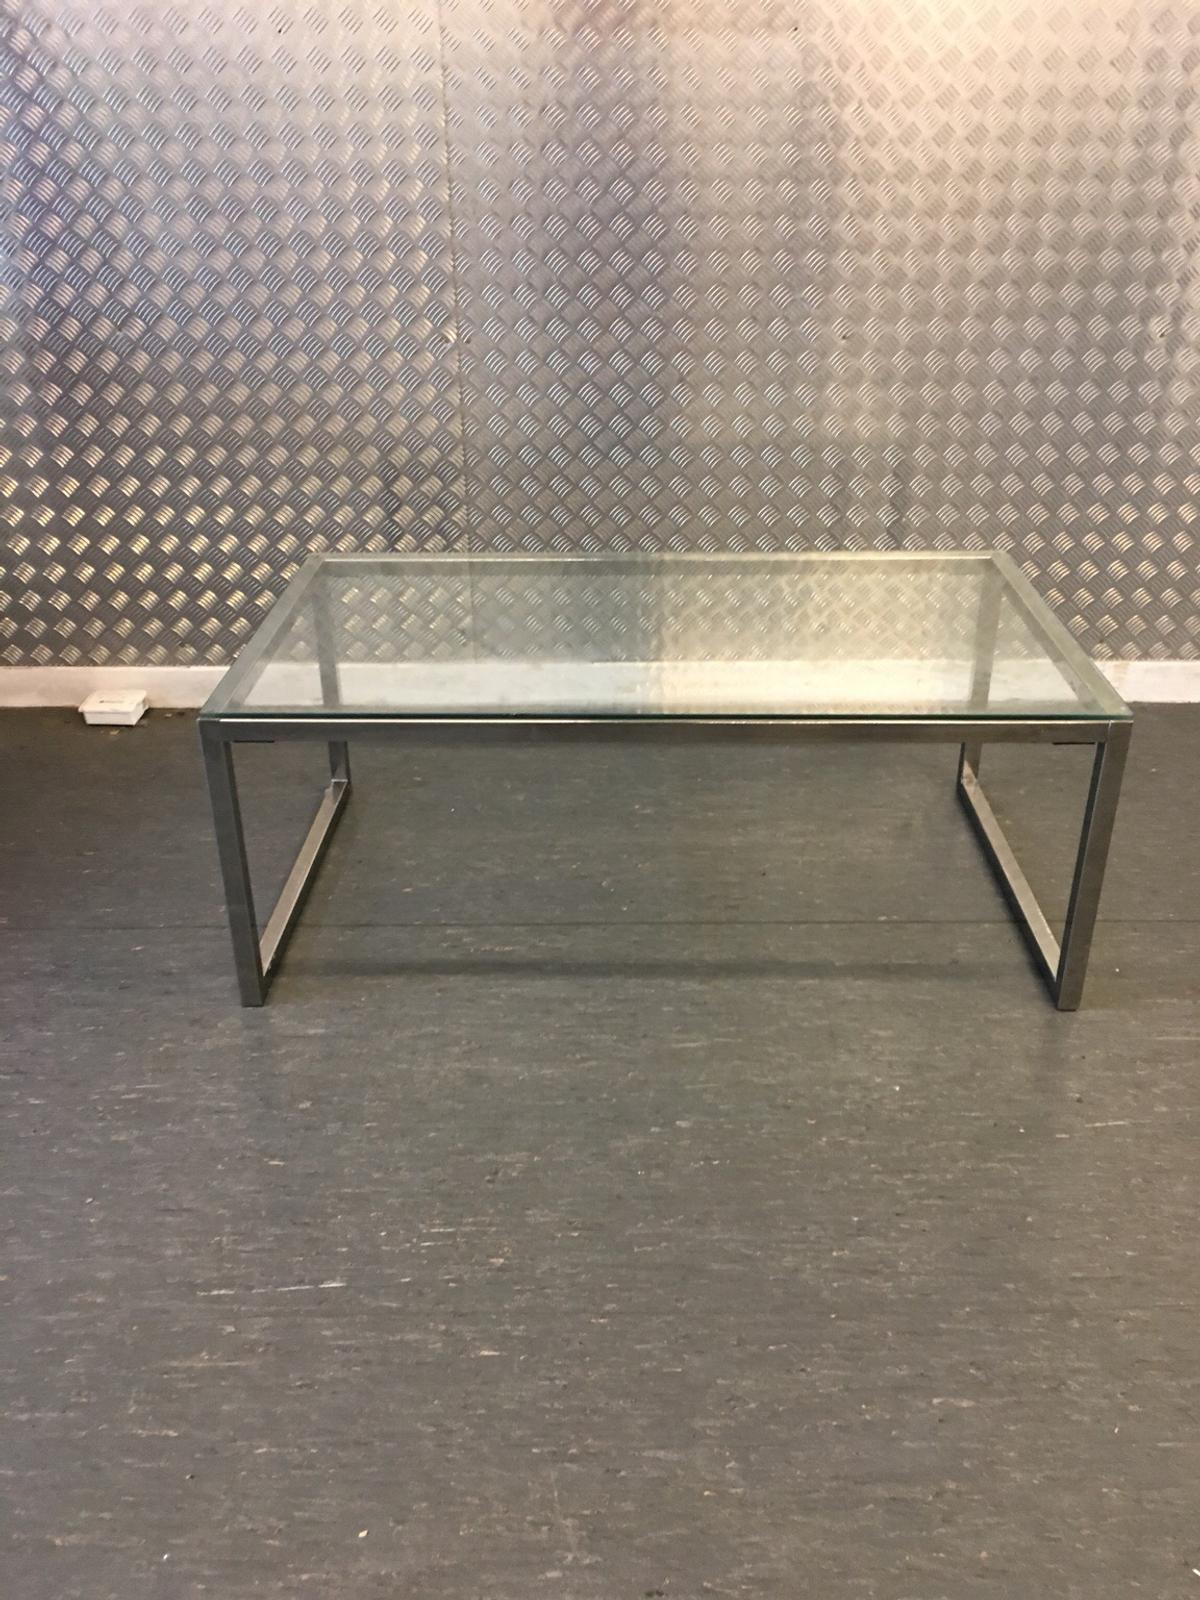 Ikea Chrome Glass Coffee Table In Sw16 London Borough Of Merton For 40 00 For Sale Shpock